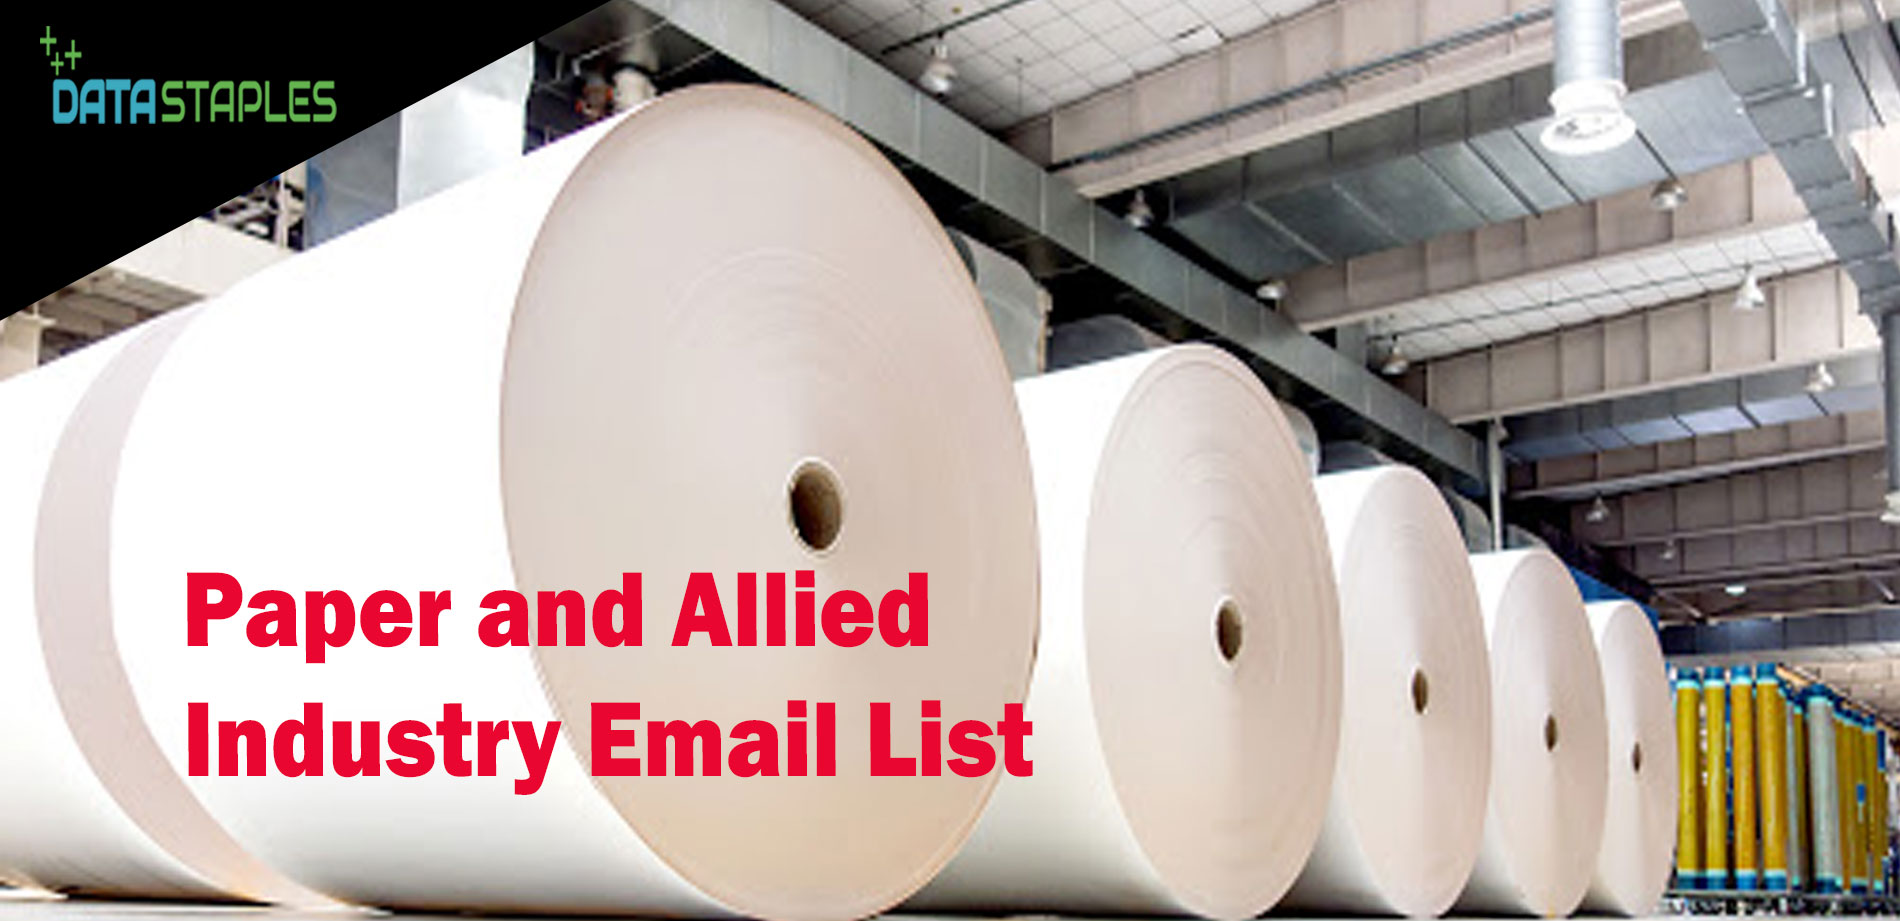 Paper and Allied Industry Email List | DataStaples